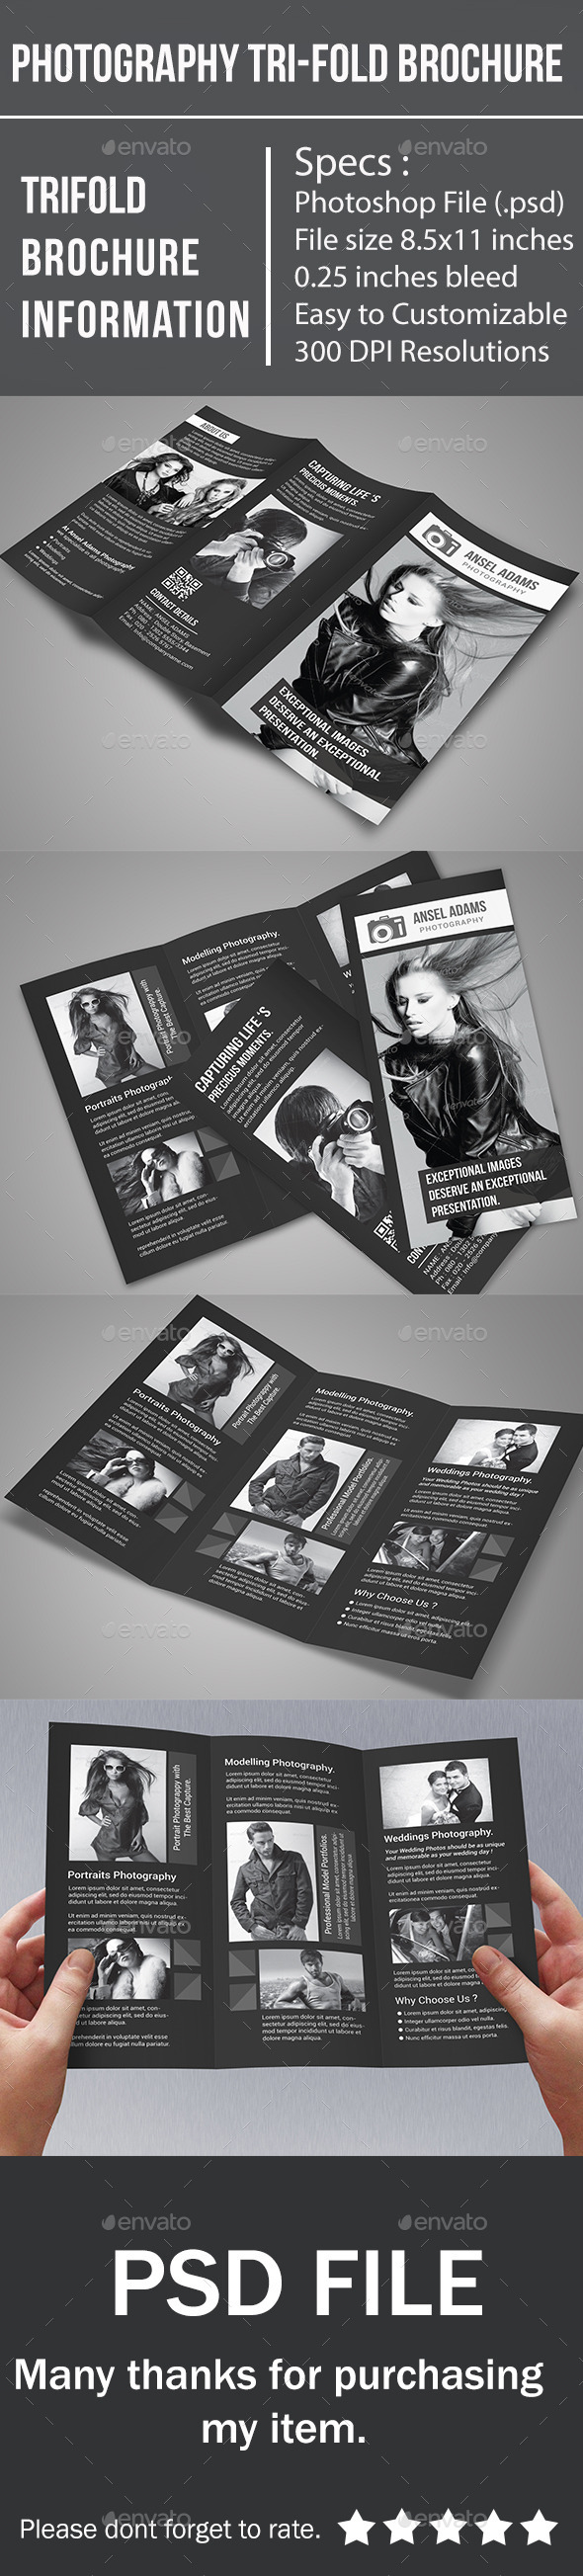 Photography Tri-Fold Brochure - Corporate Brochures